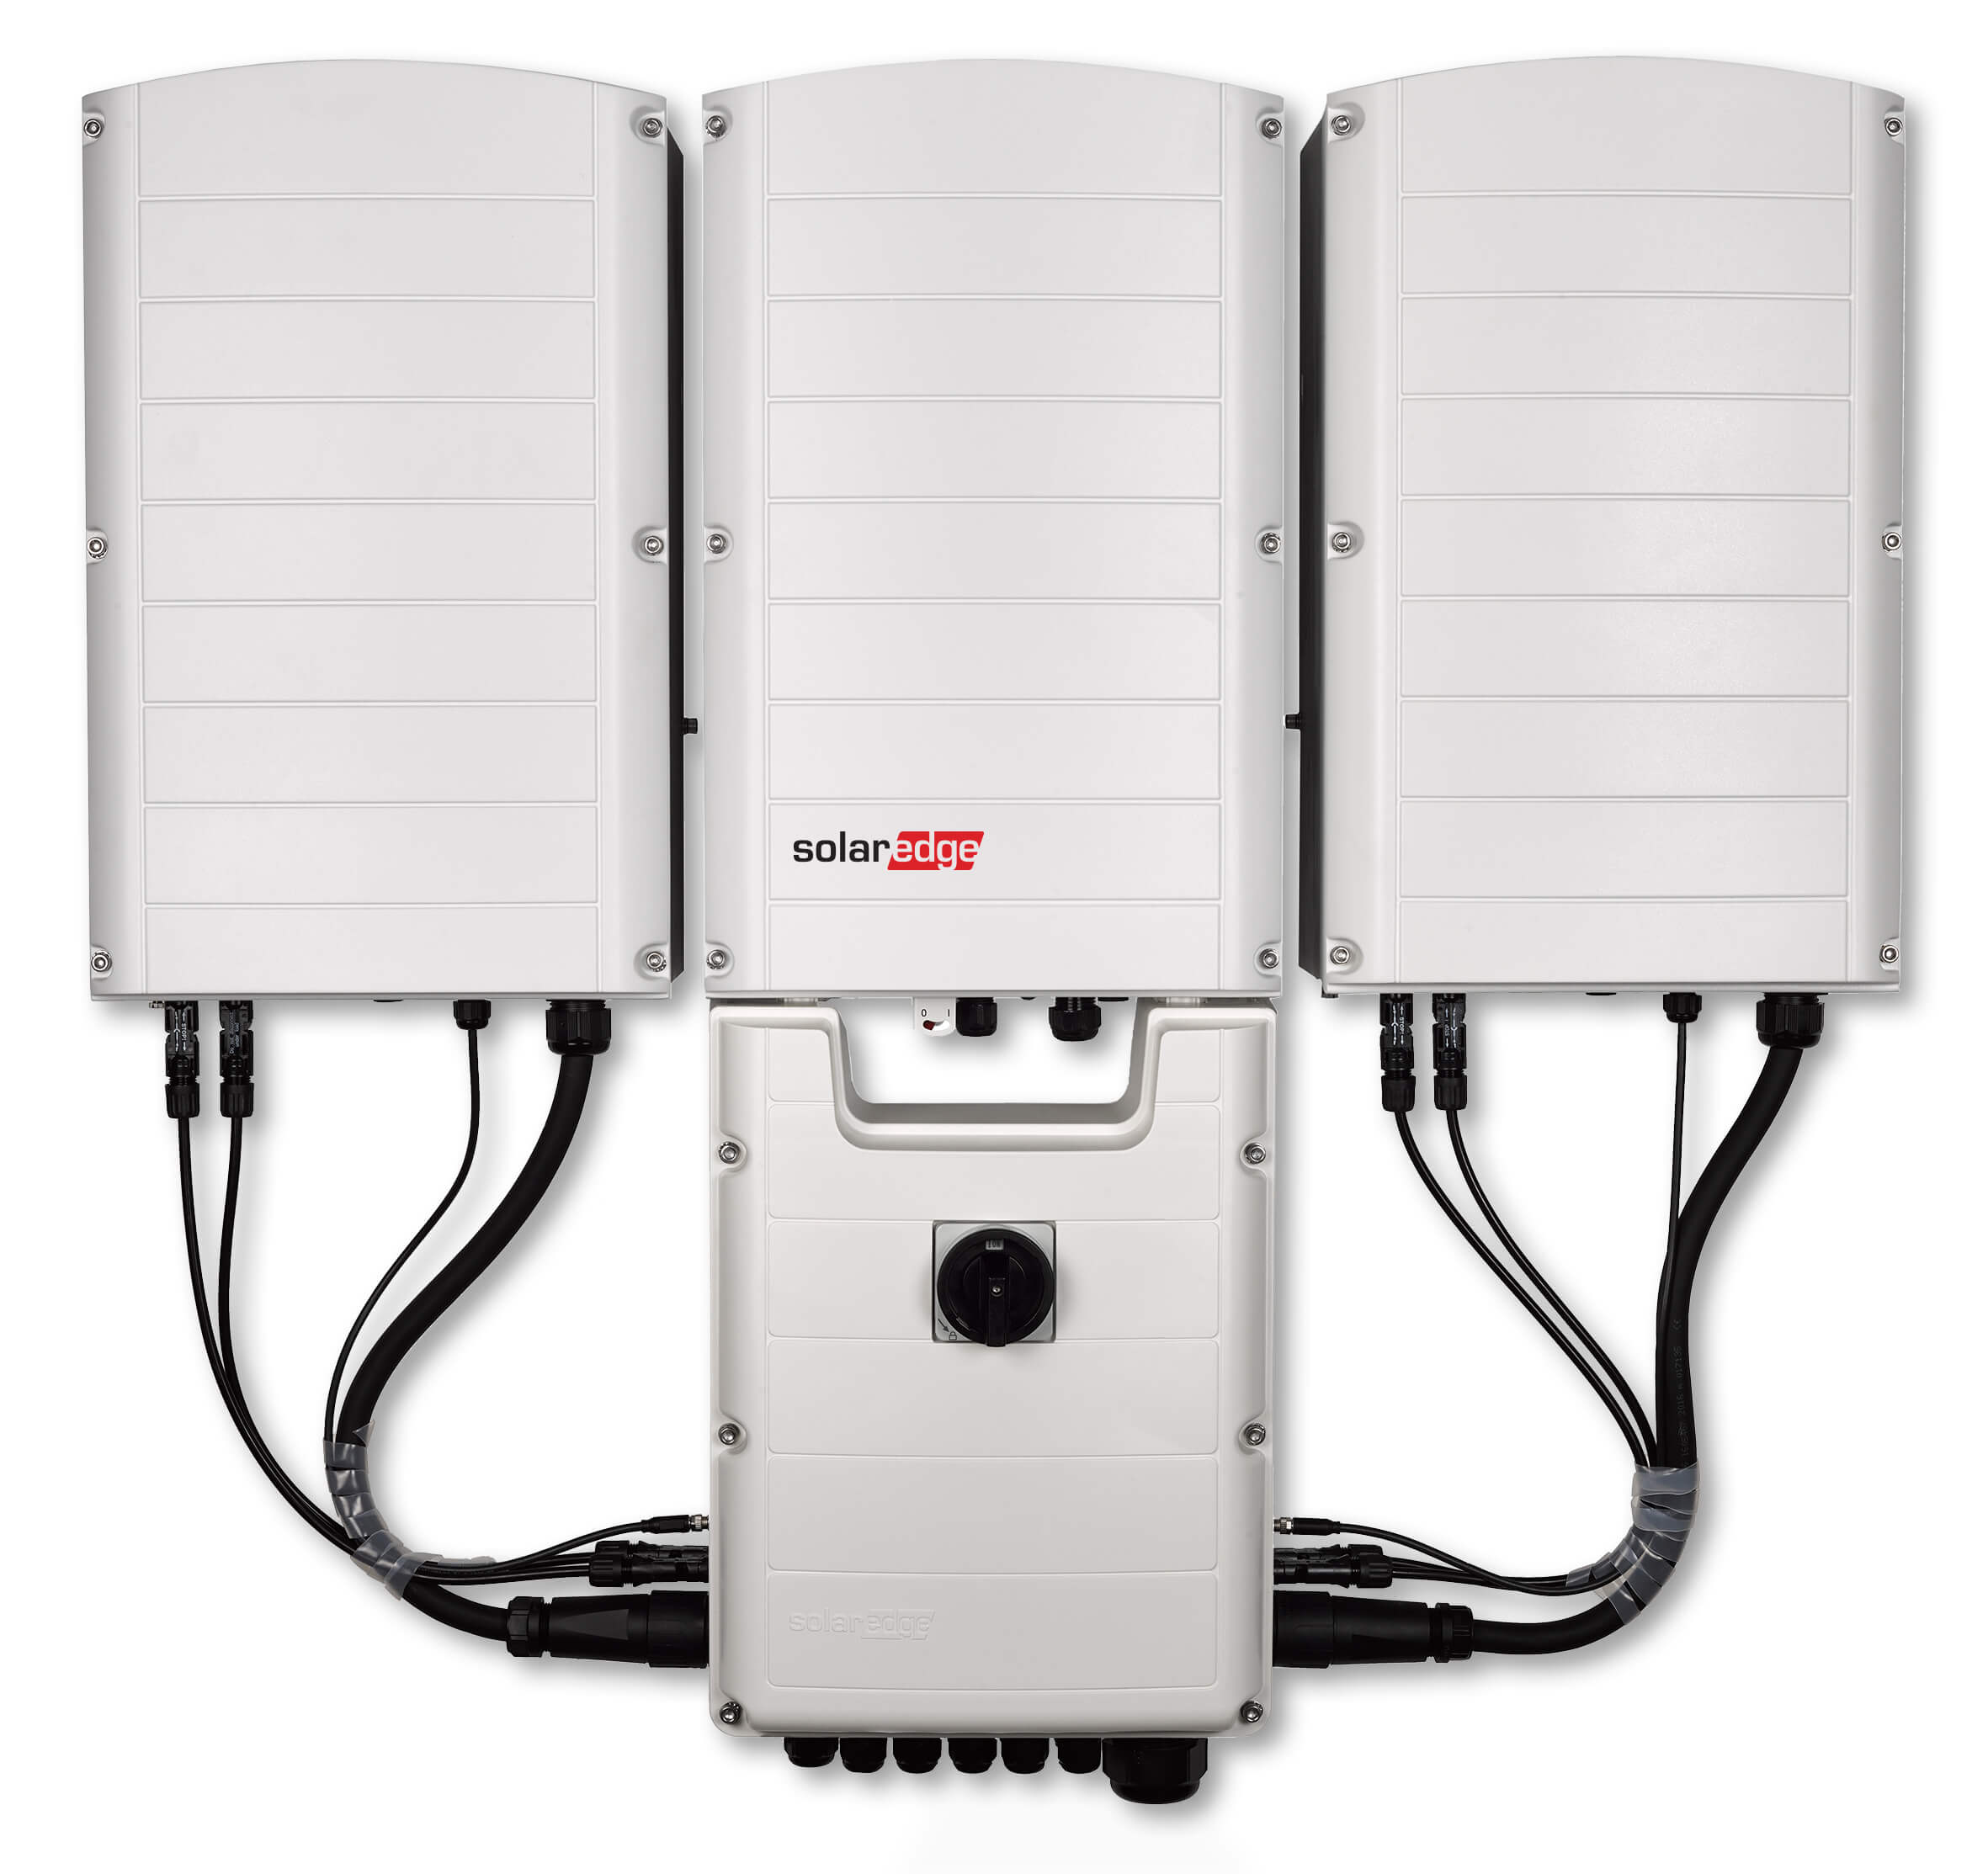 solaredge SolarEdge Showcases Latest Commercial, Residential Products